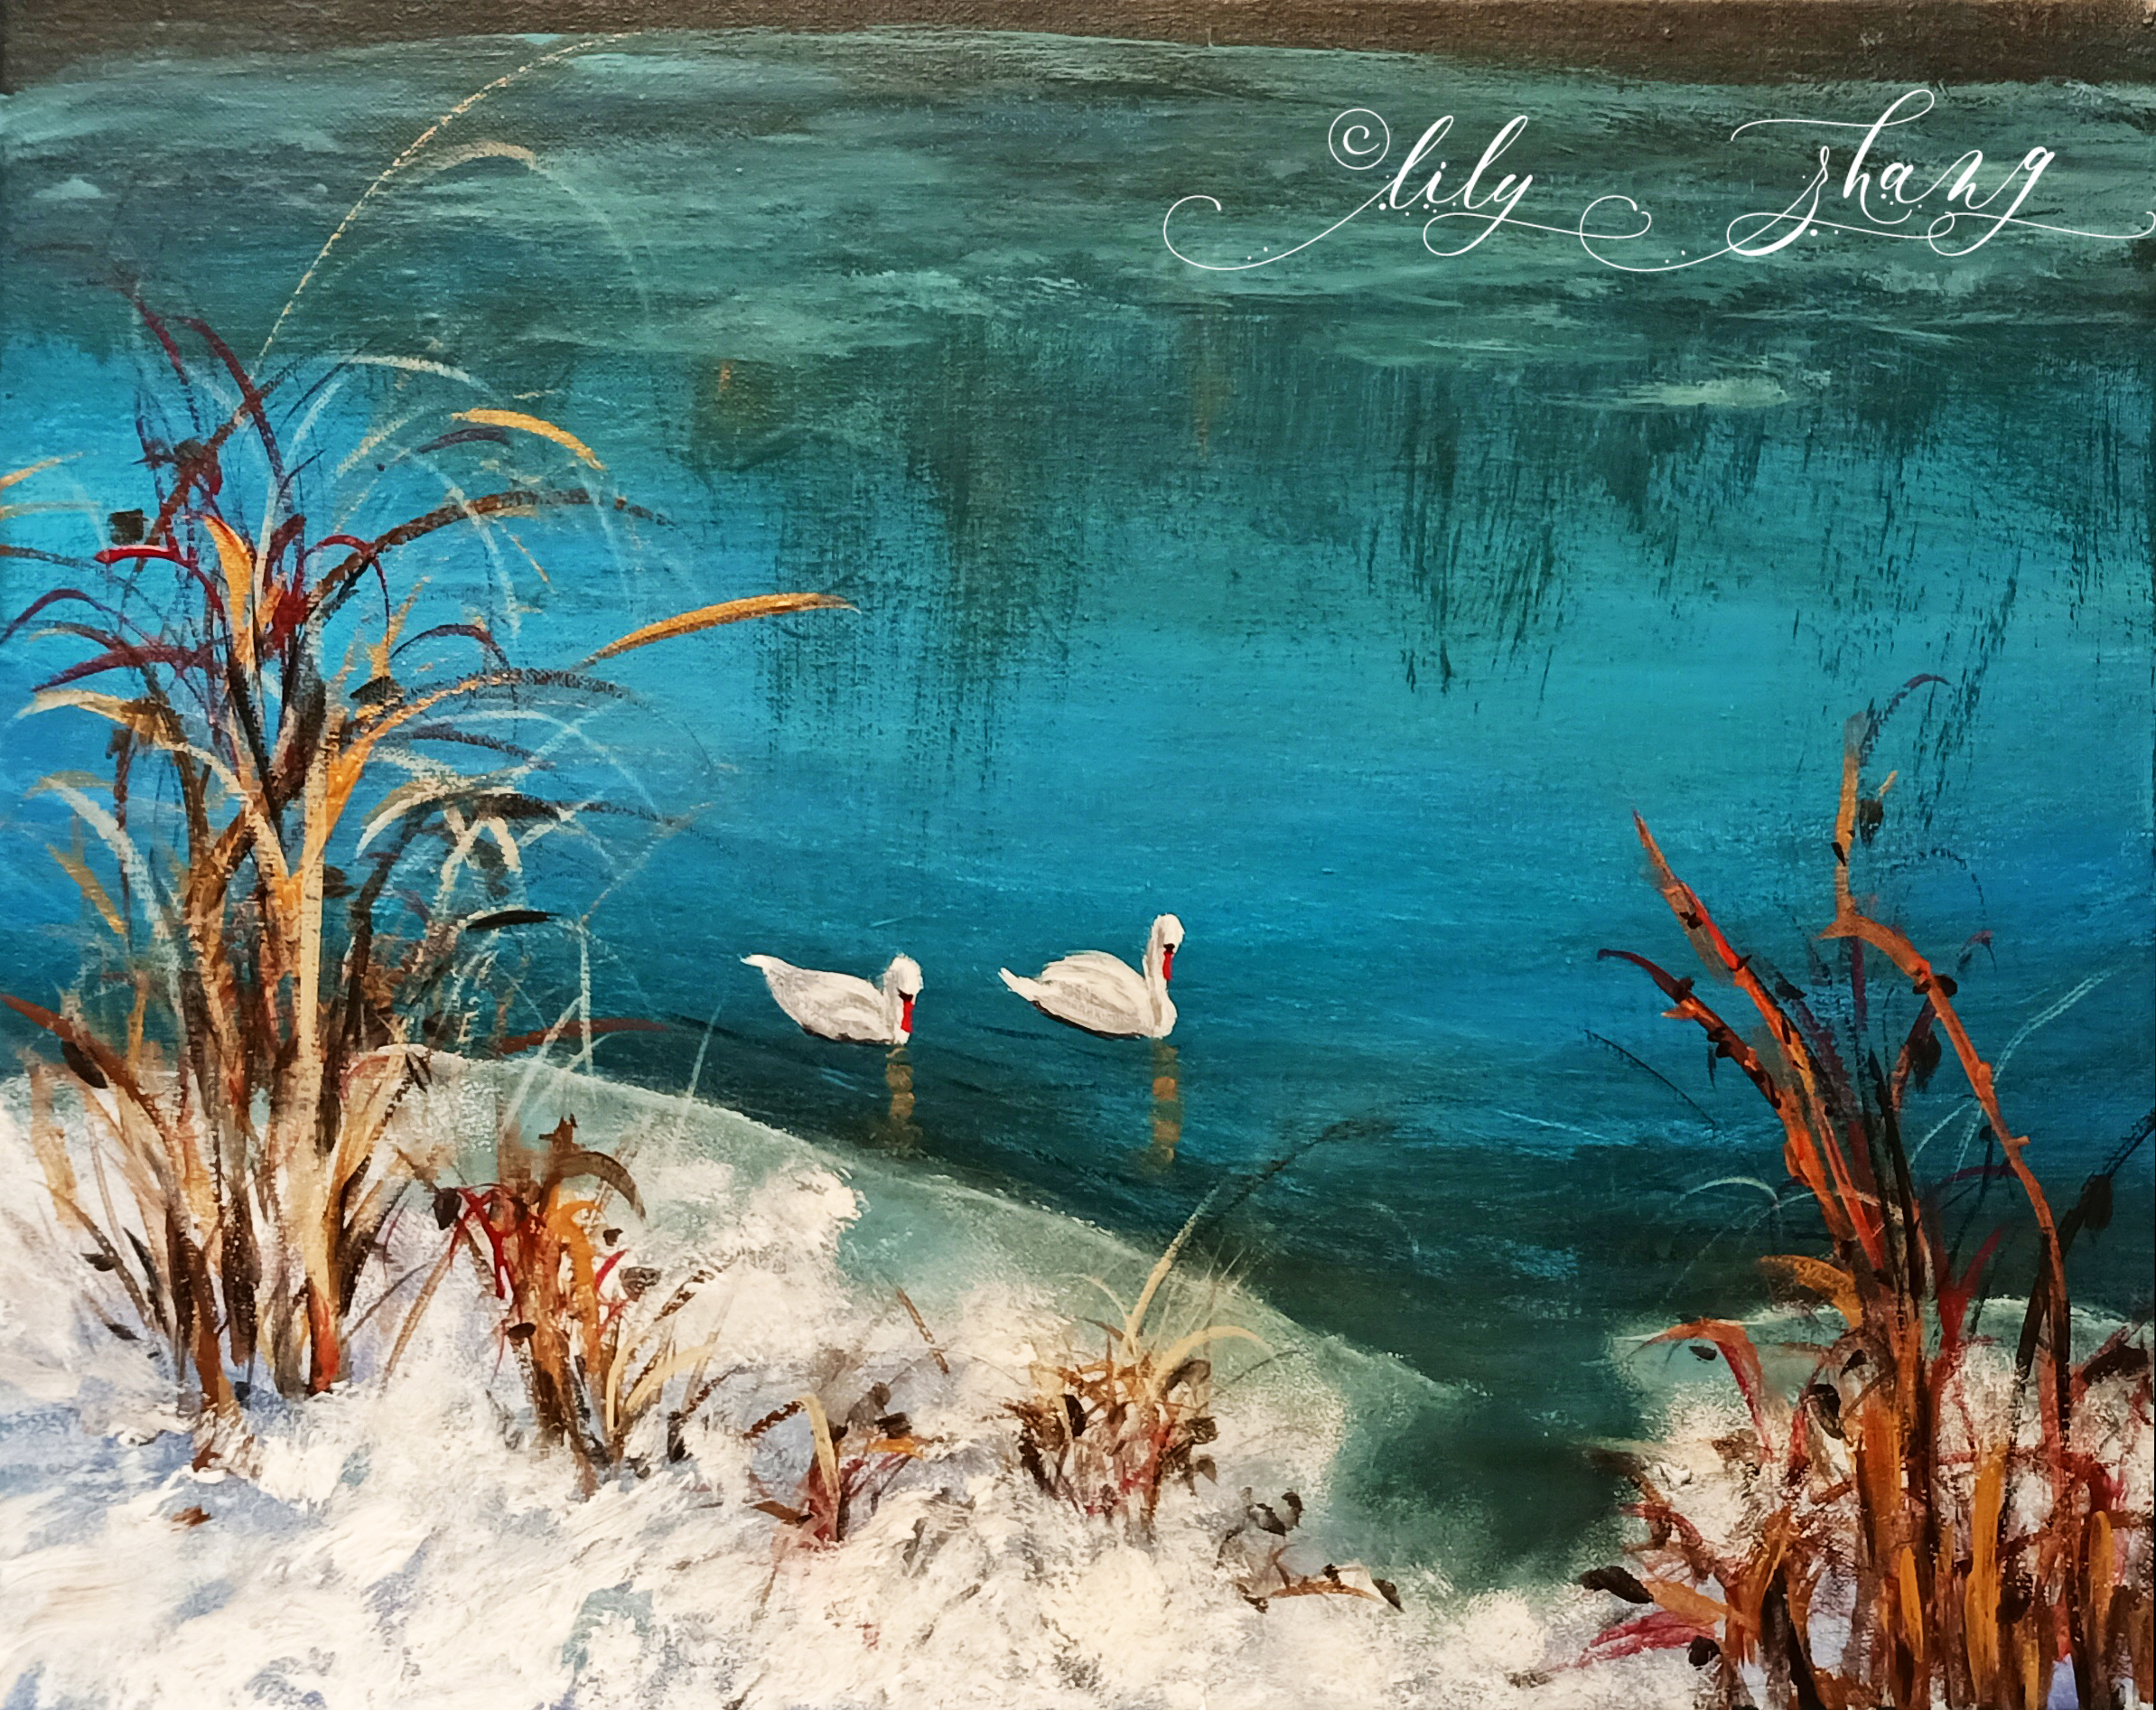 Swans on 12 mile creek